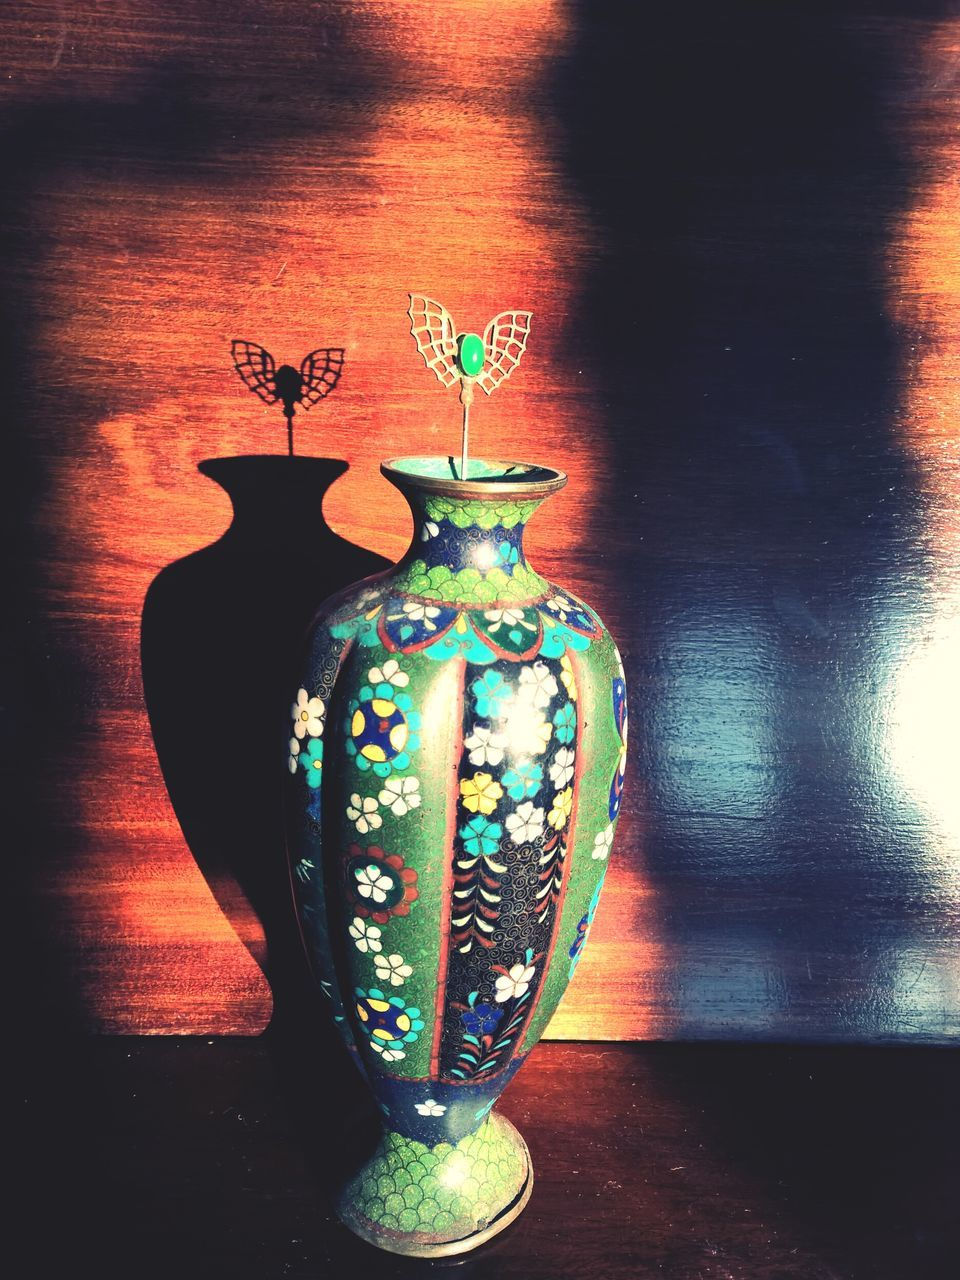 Colorful Patterned Urn Against Wooden Wall